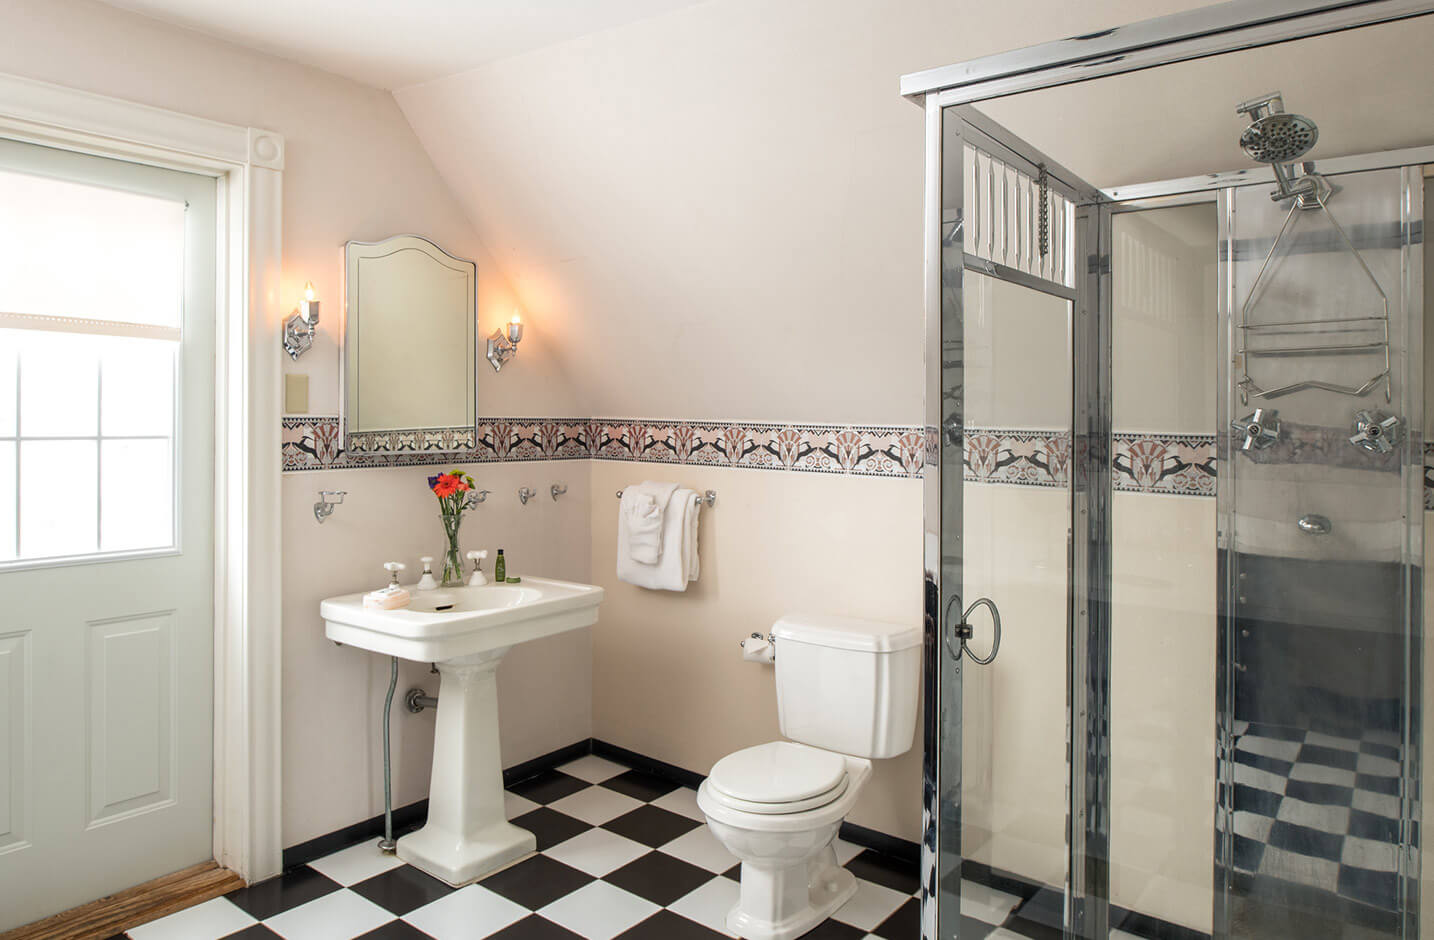 Bed and Breakfast in the Finger Lakes - Room 10 bathroom